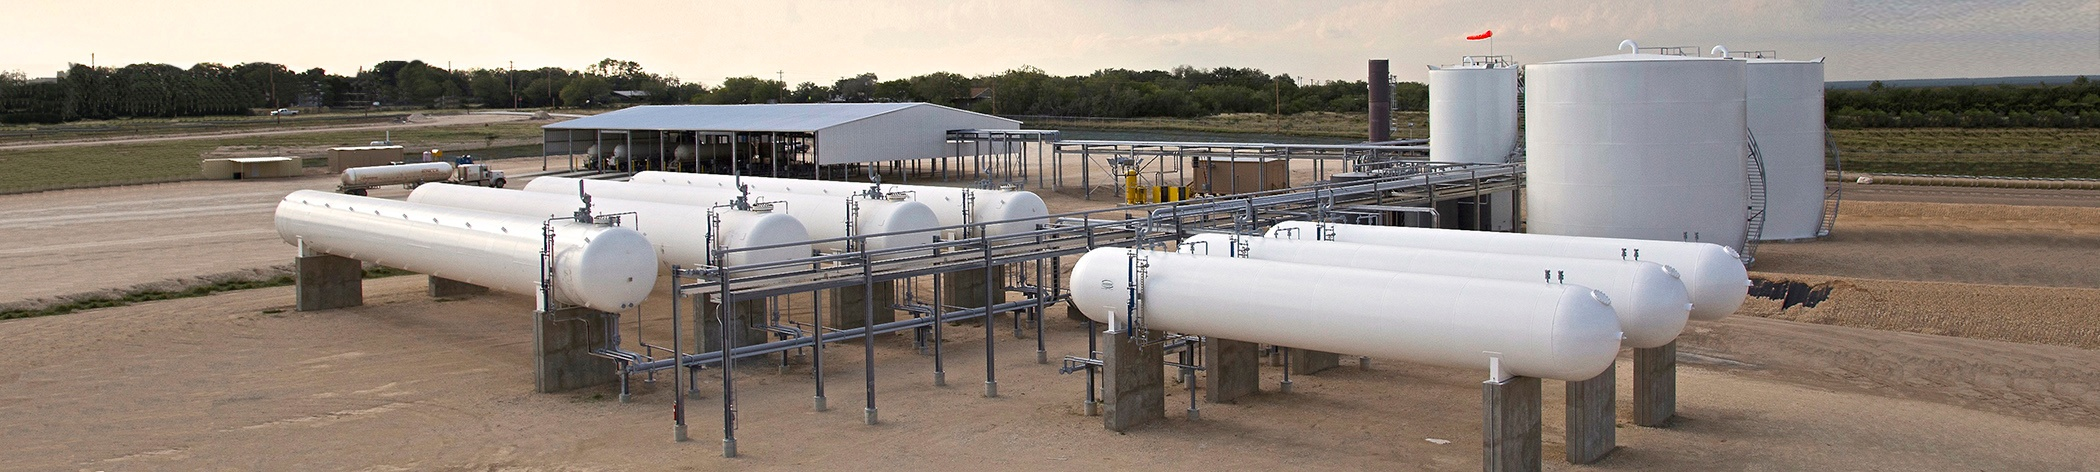 NGL Storage Tanks and Storage Infrastructure - Engineering - Fabrication - Construction Services___.jpg